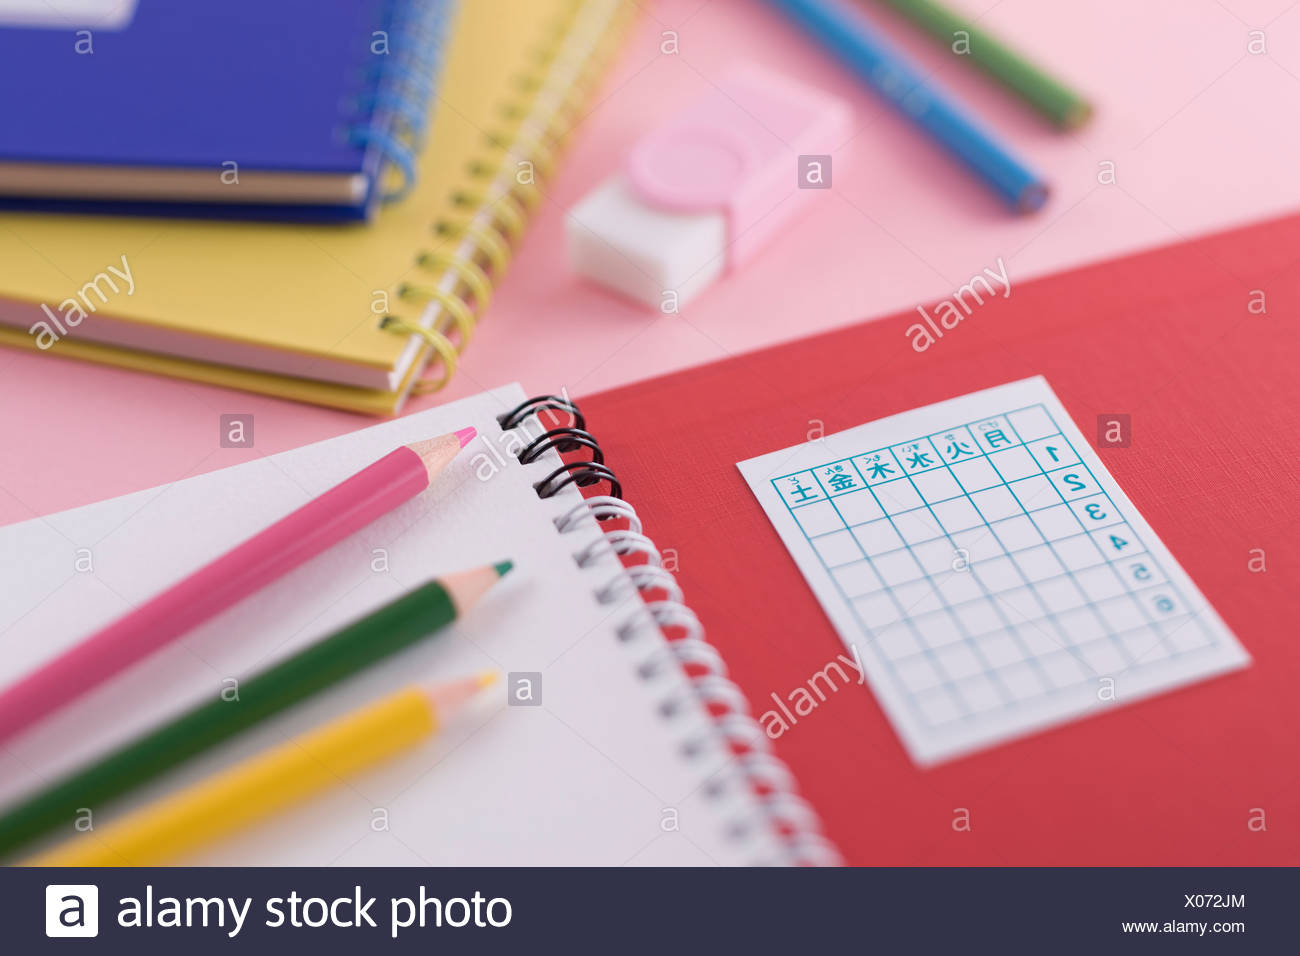 Ordinateur portable et crayon de couleur Photo Stock